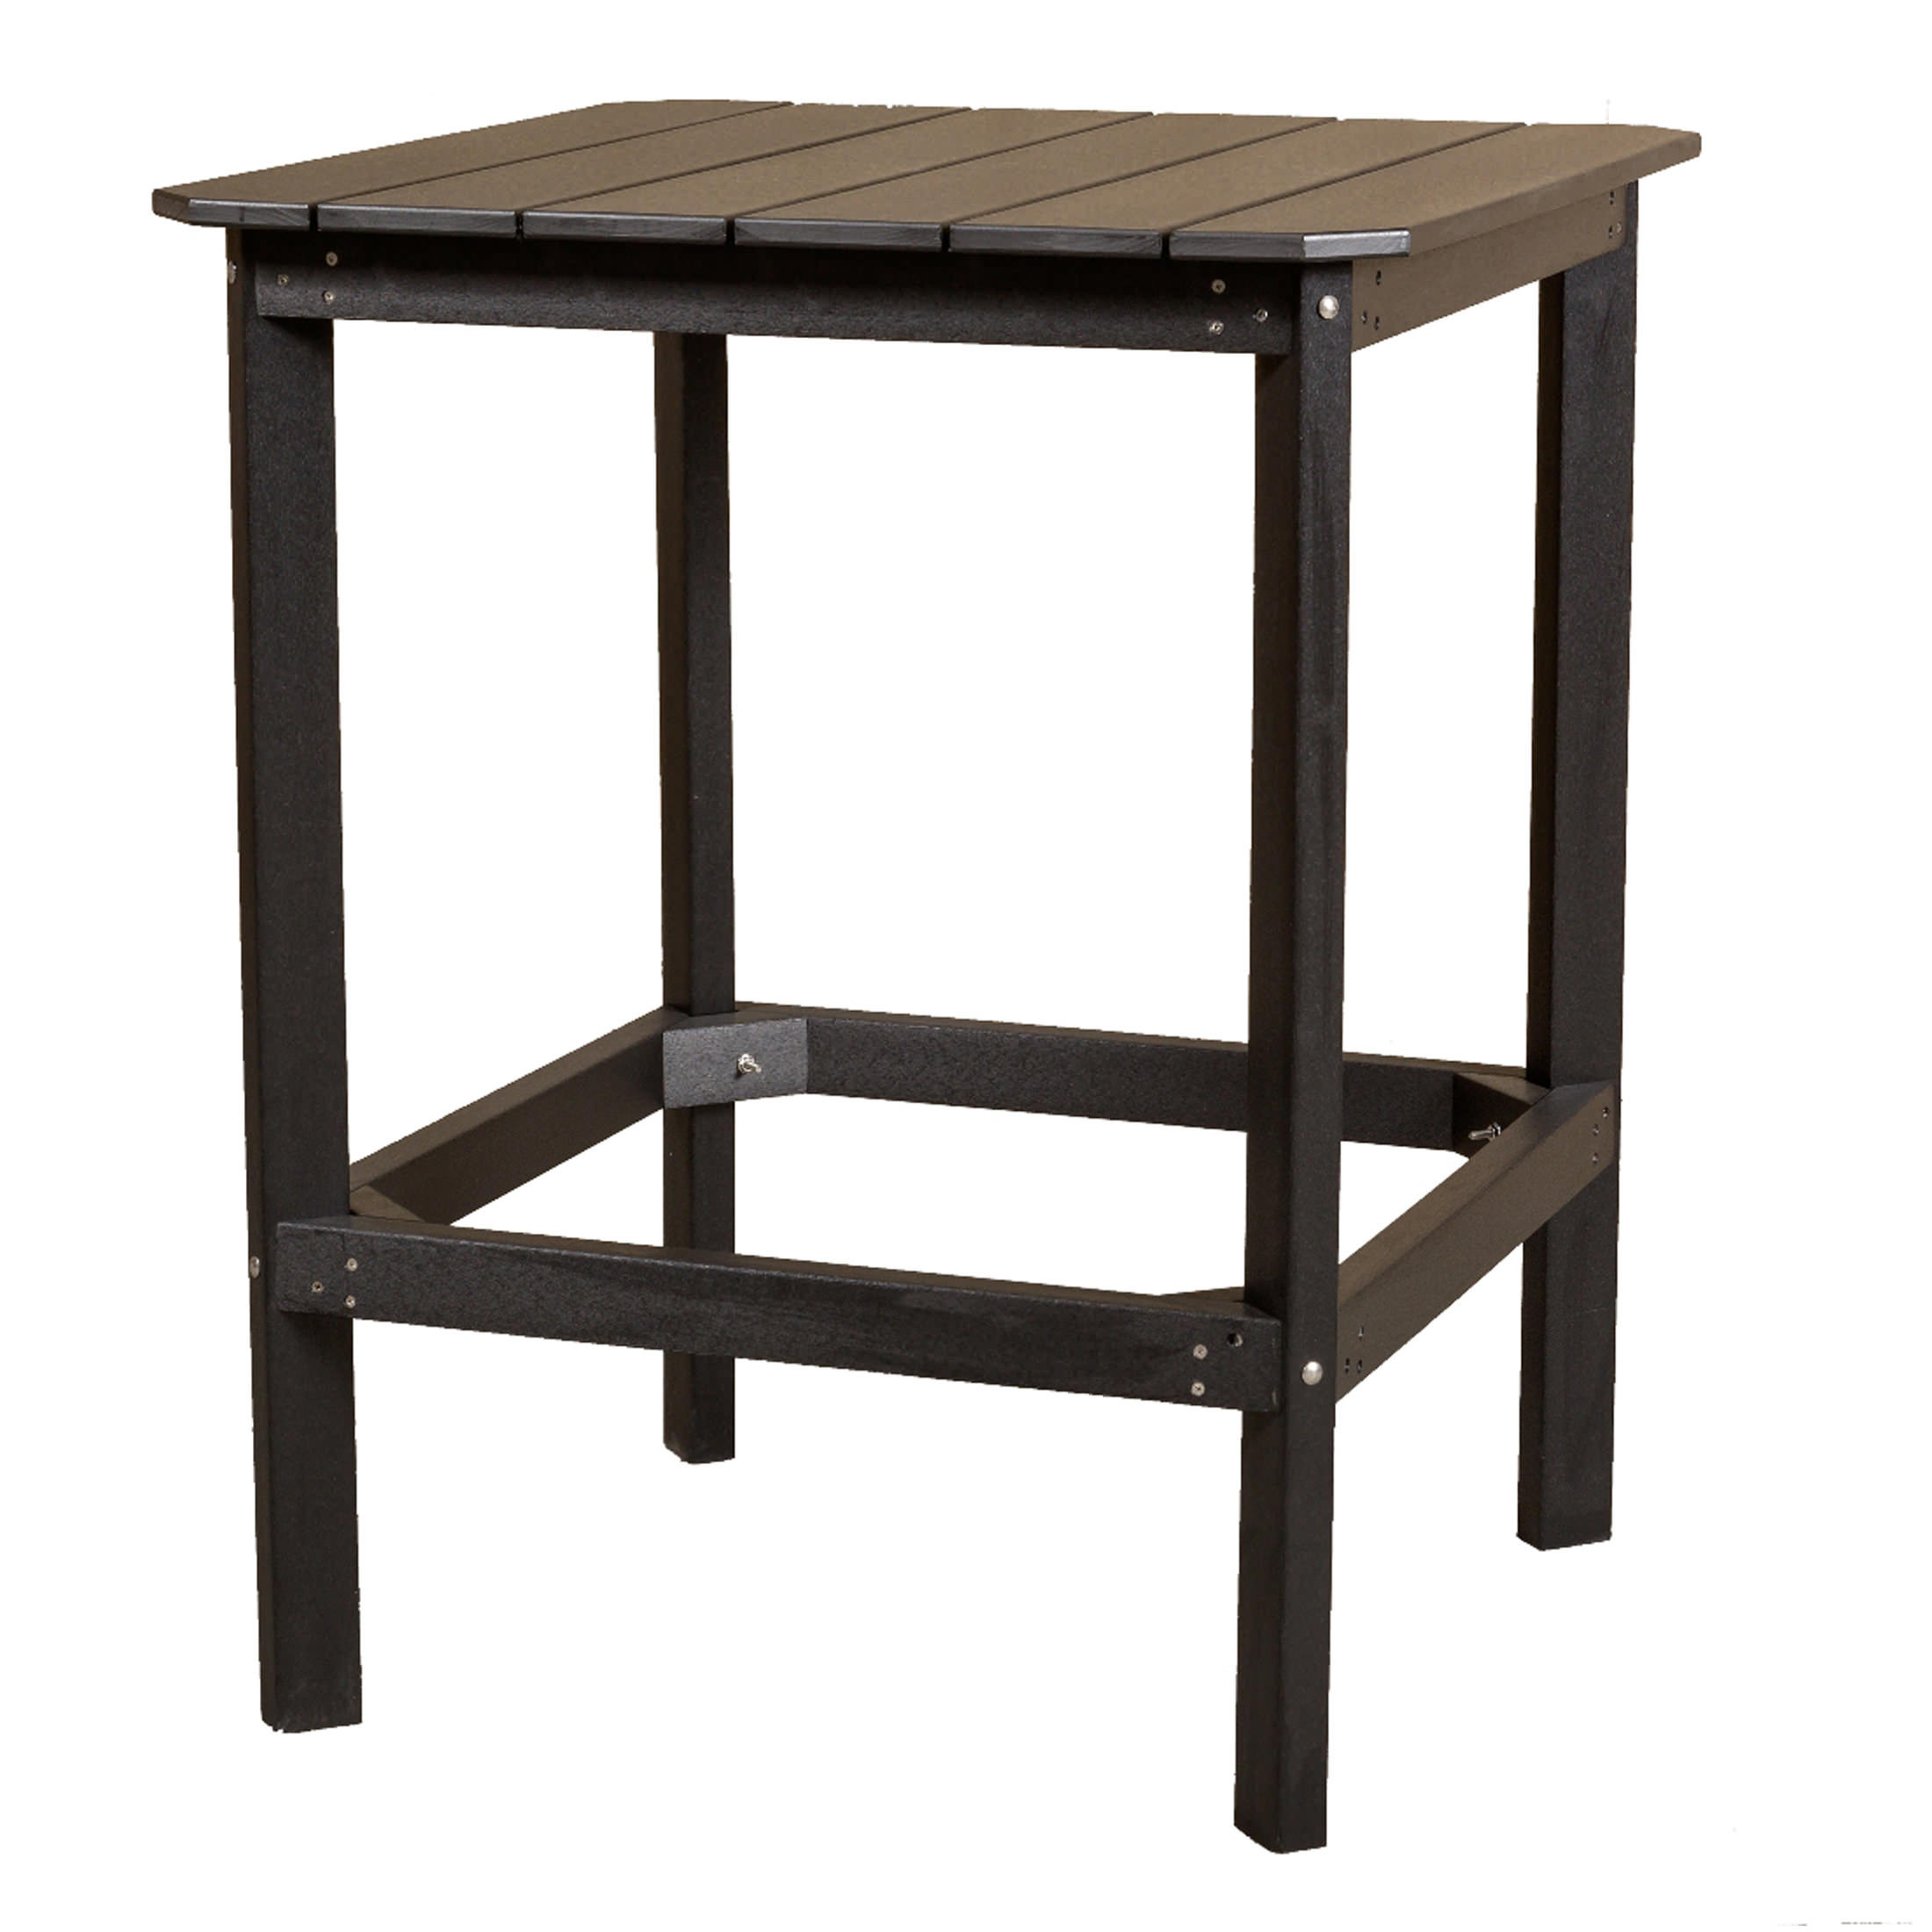 Little Cottage Classic High Dining Table 40 in